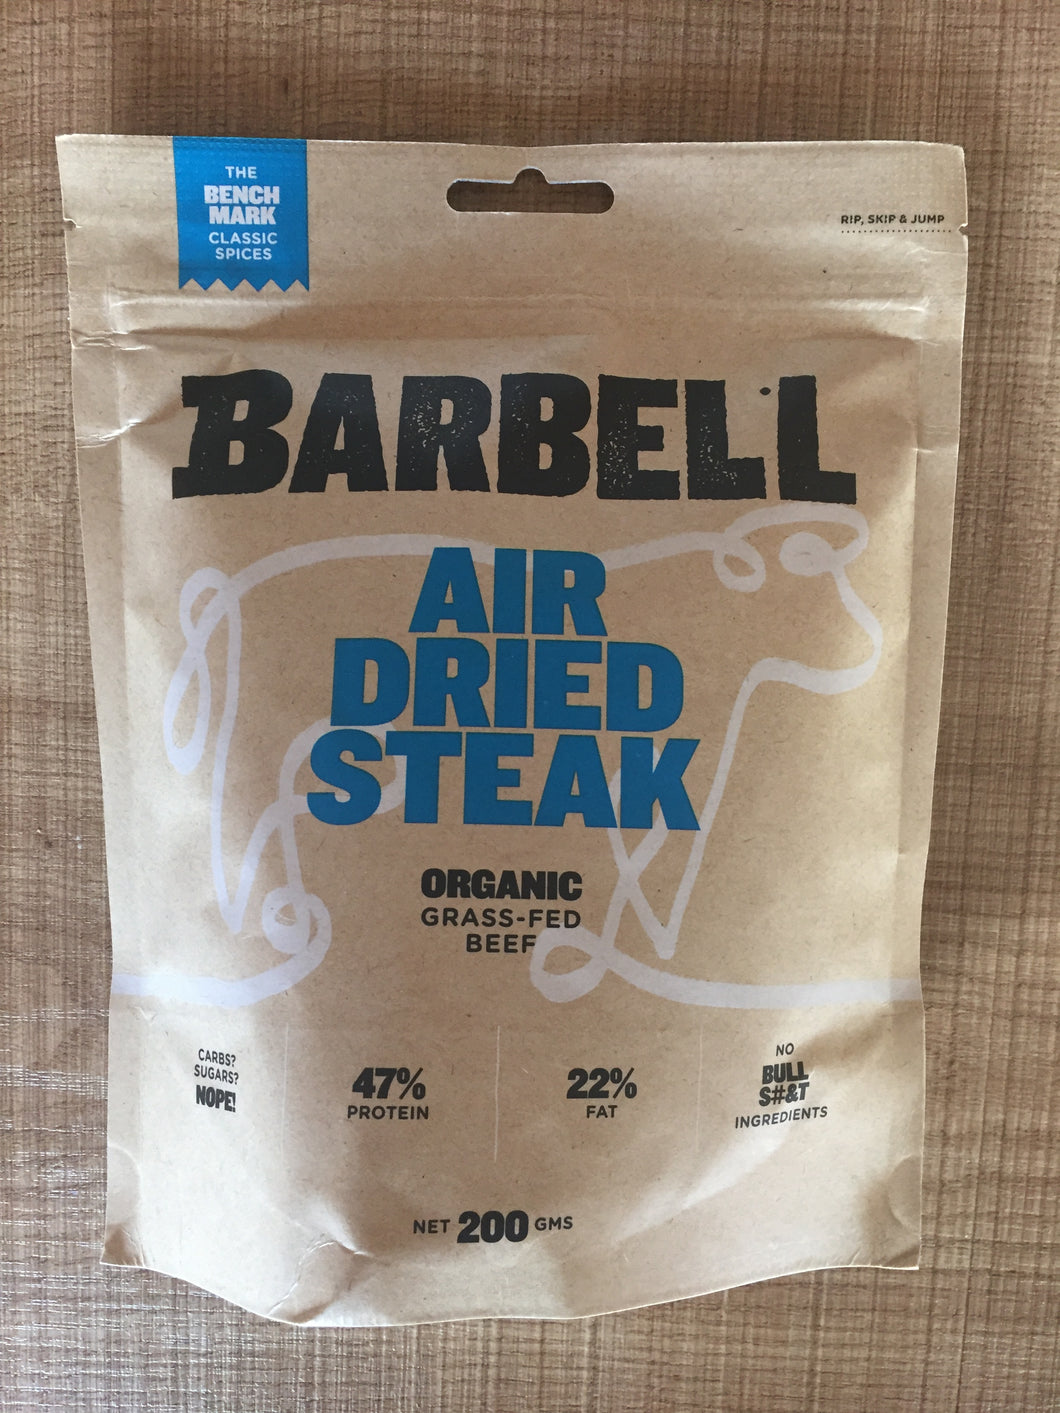 Barbell Biltong Air Dried Steak 200g- Benchmark Classic Spices